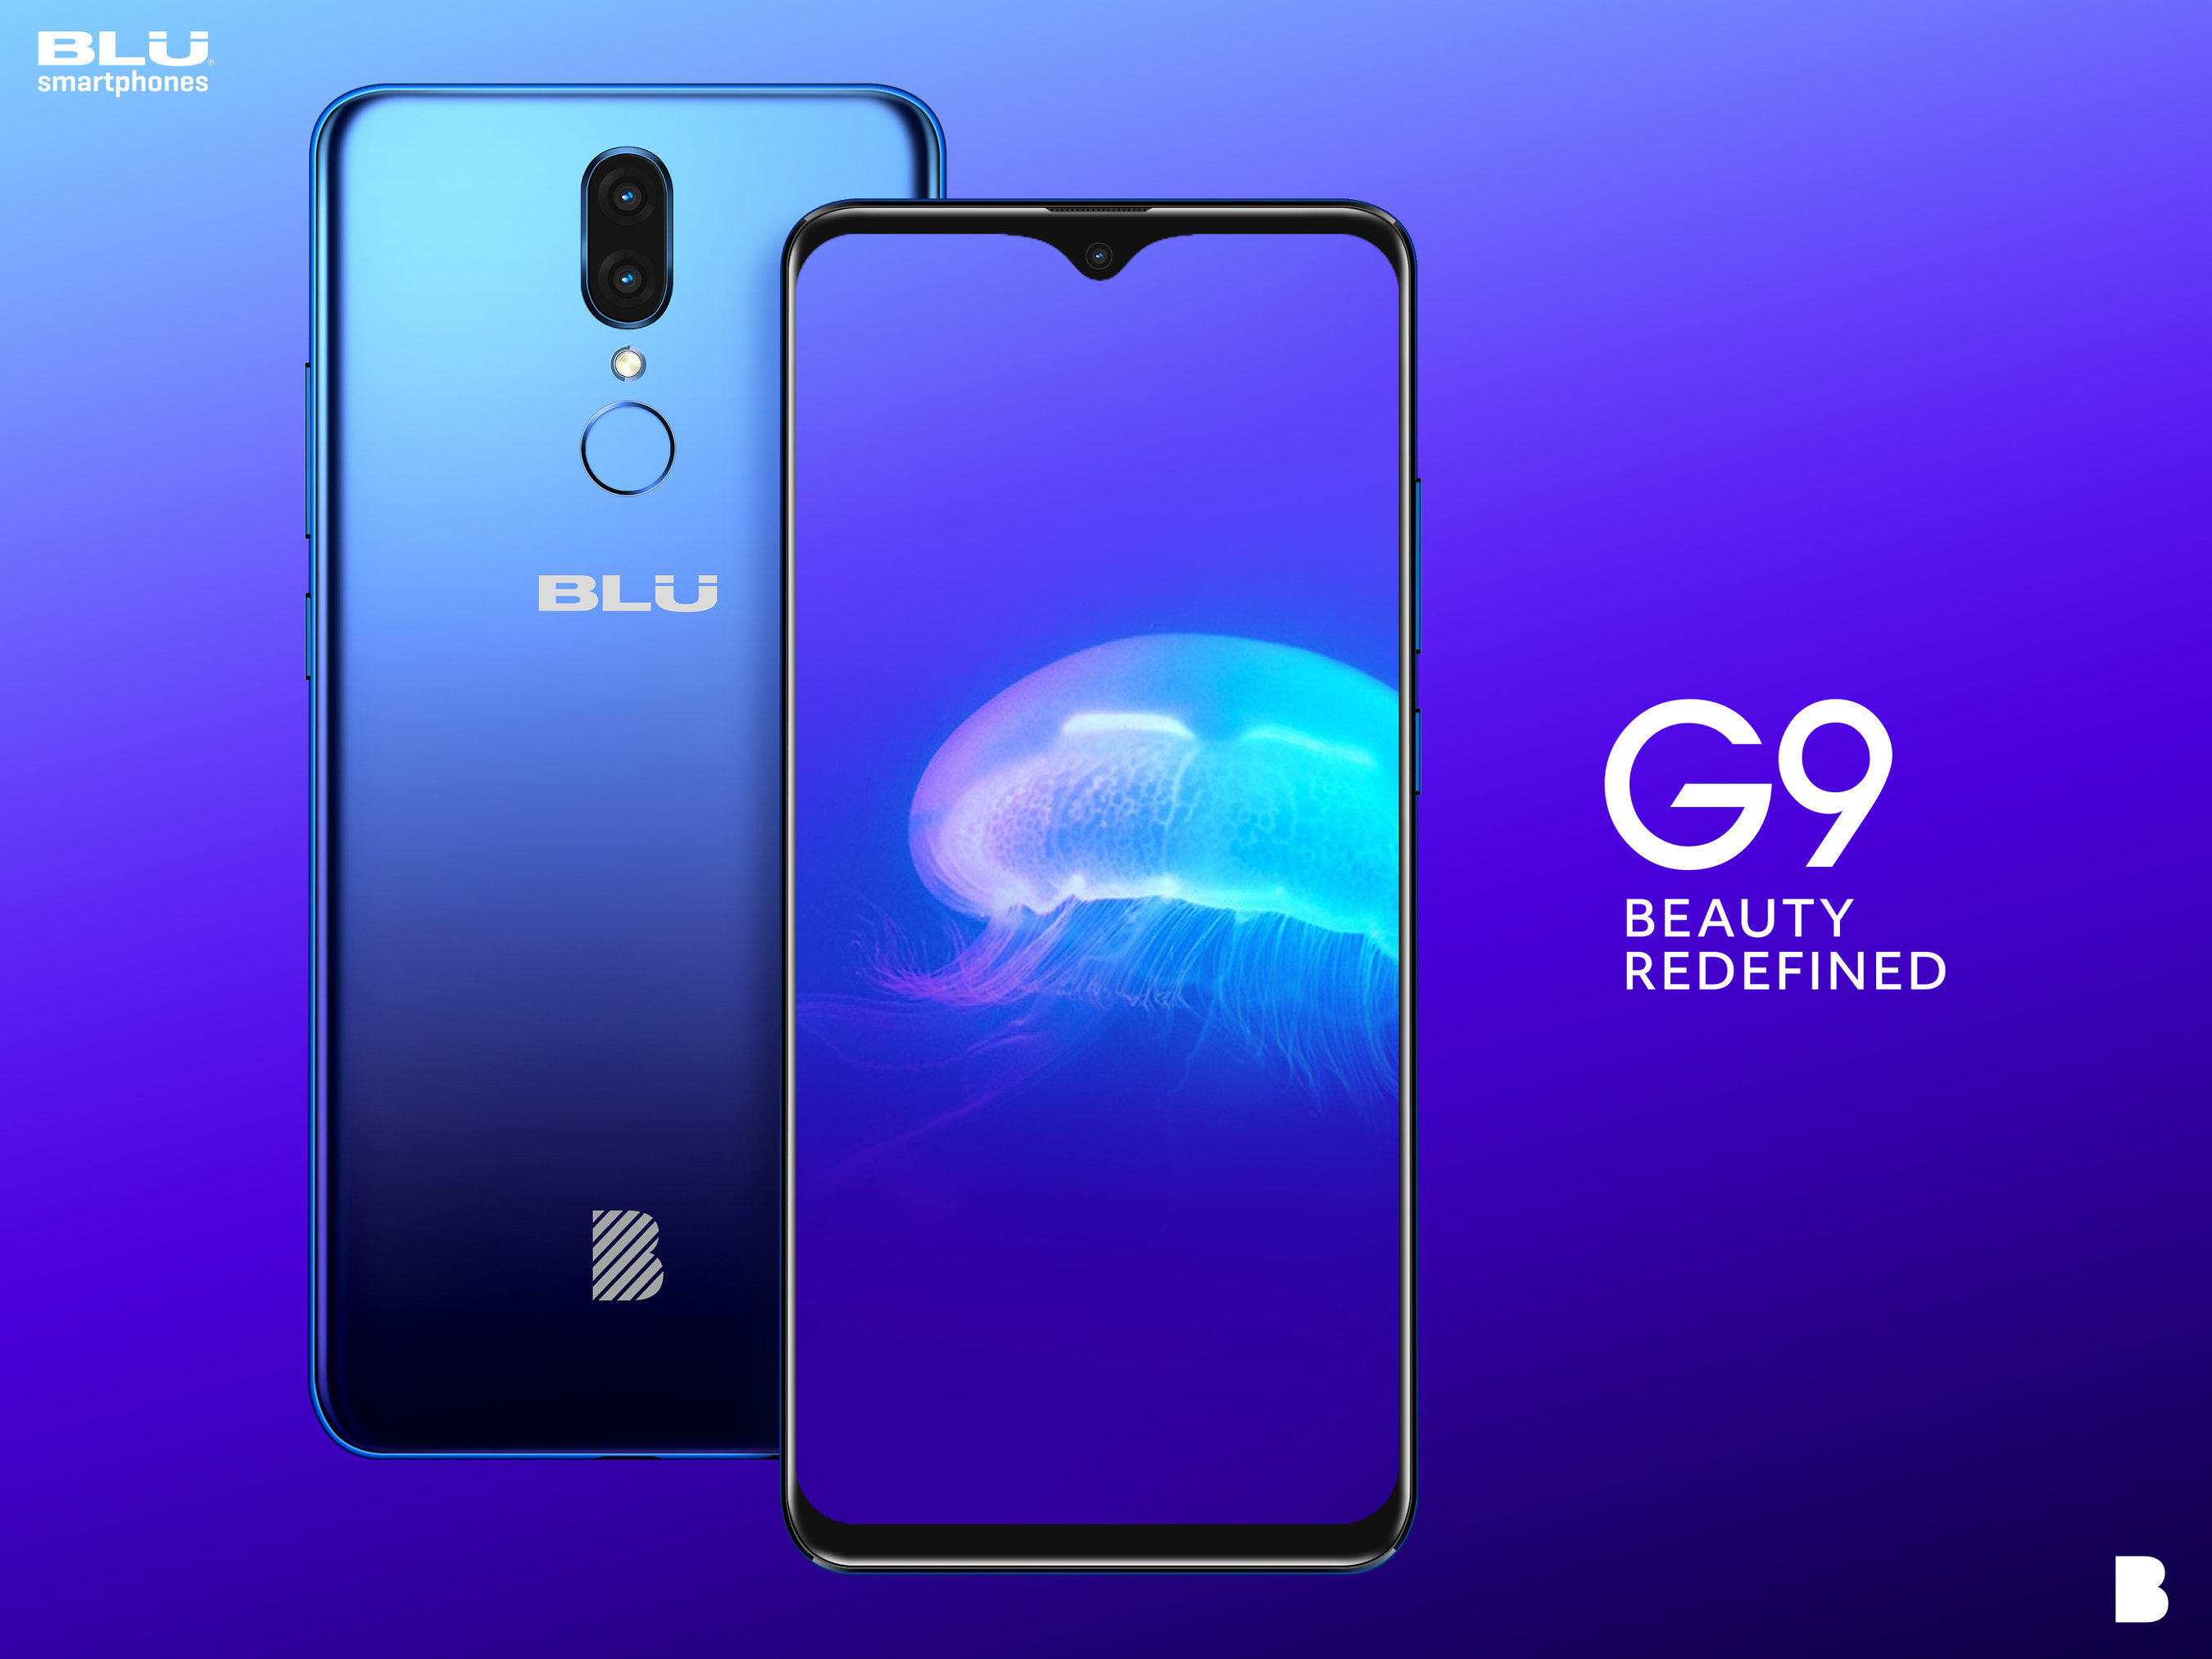 BLU Products Introduces the New G9 the Latest Ultimate-Value